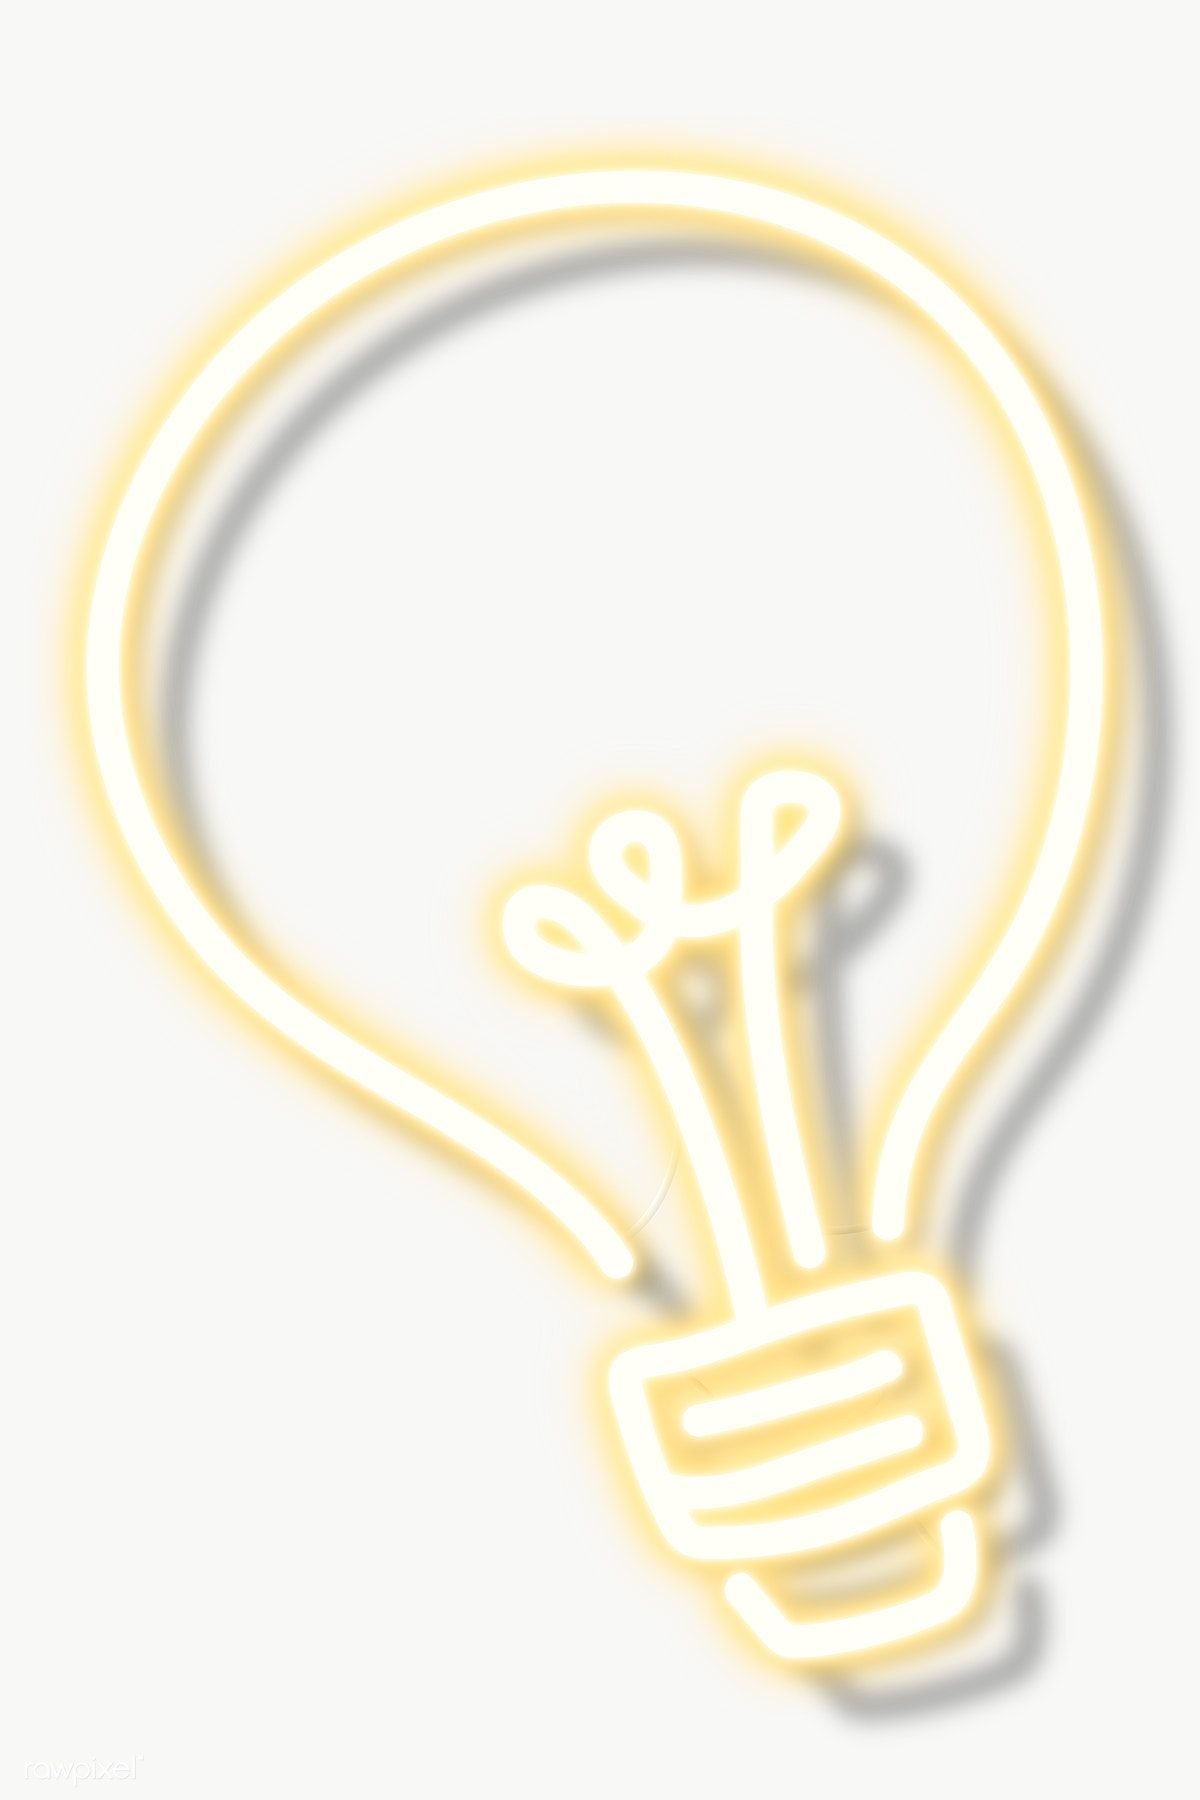 Download Premium Png Of Yellow Light Bulb Neon Sign Transparent Png 2094120 In 2020 Neon Signs Pink Neon Lights Light Bulb Icon